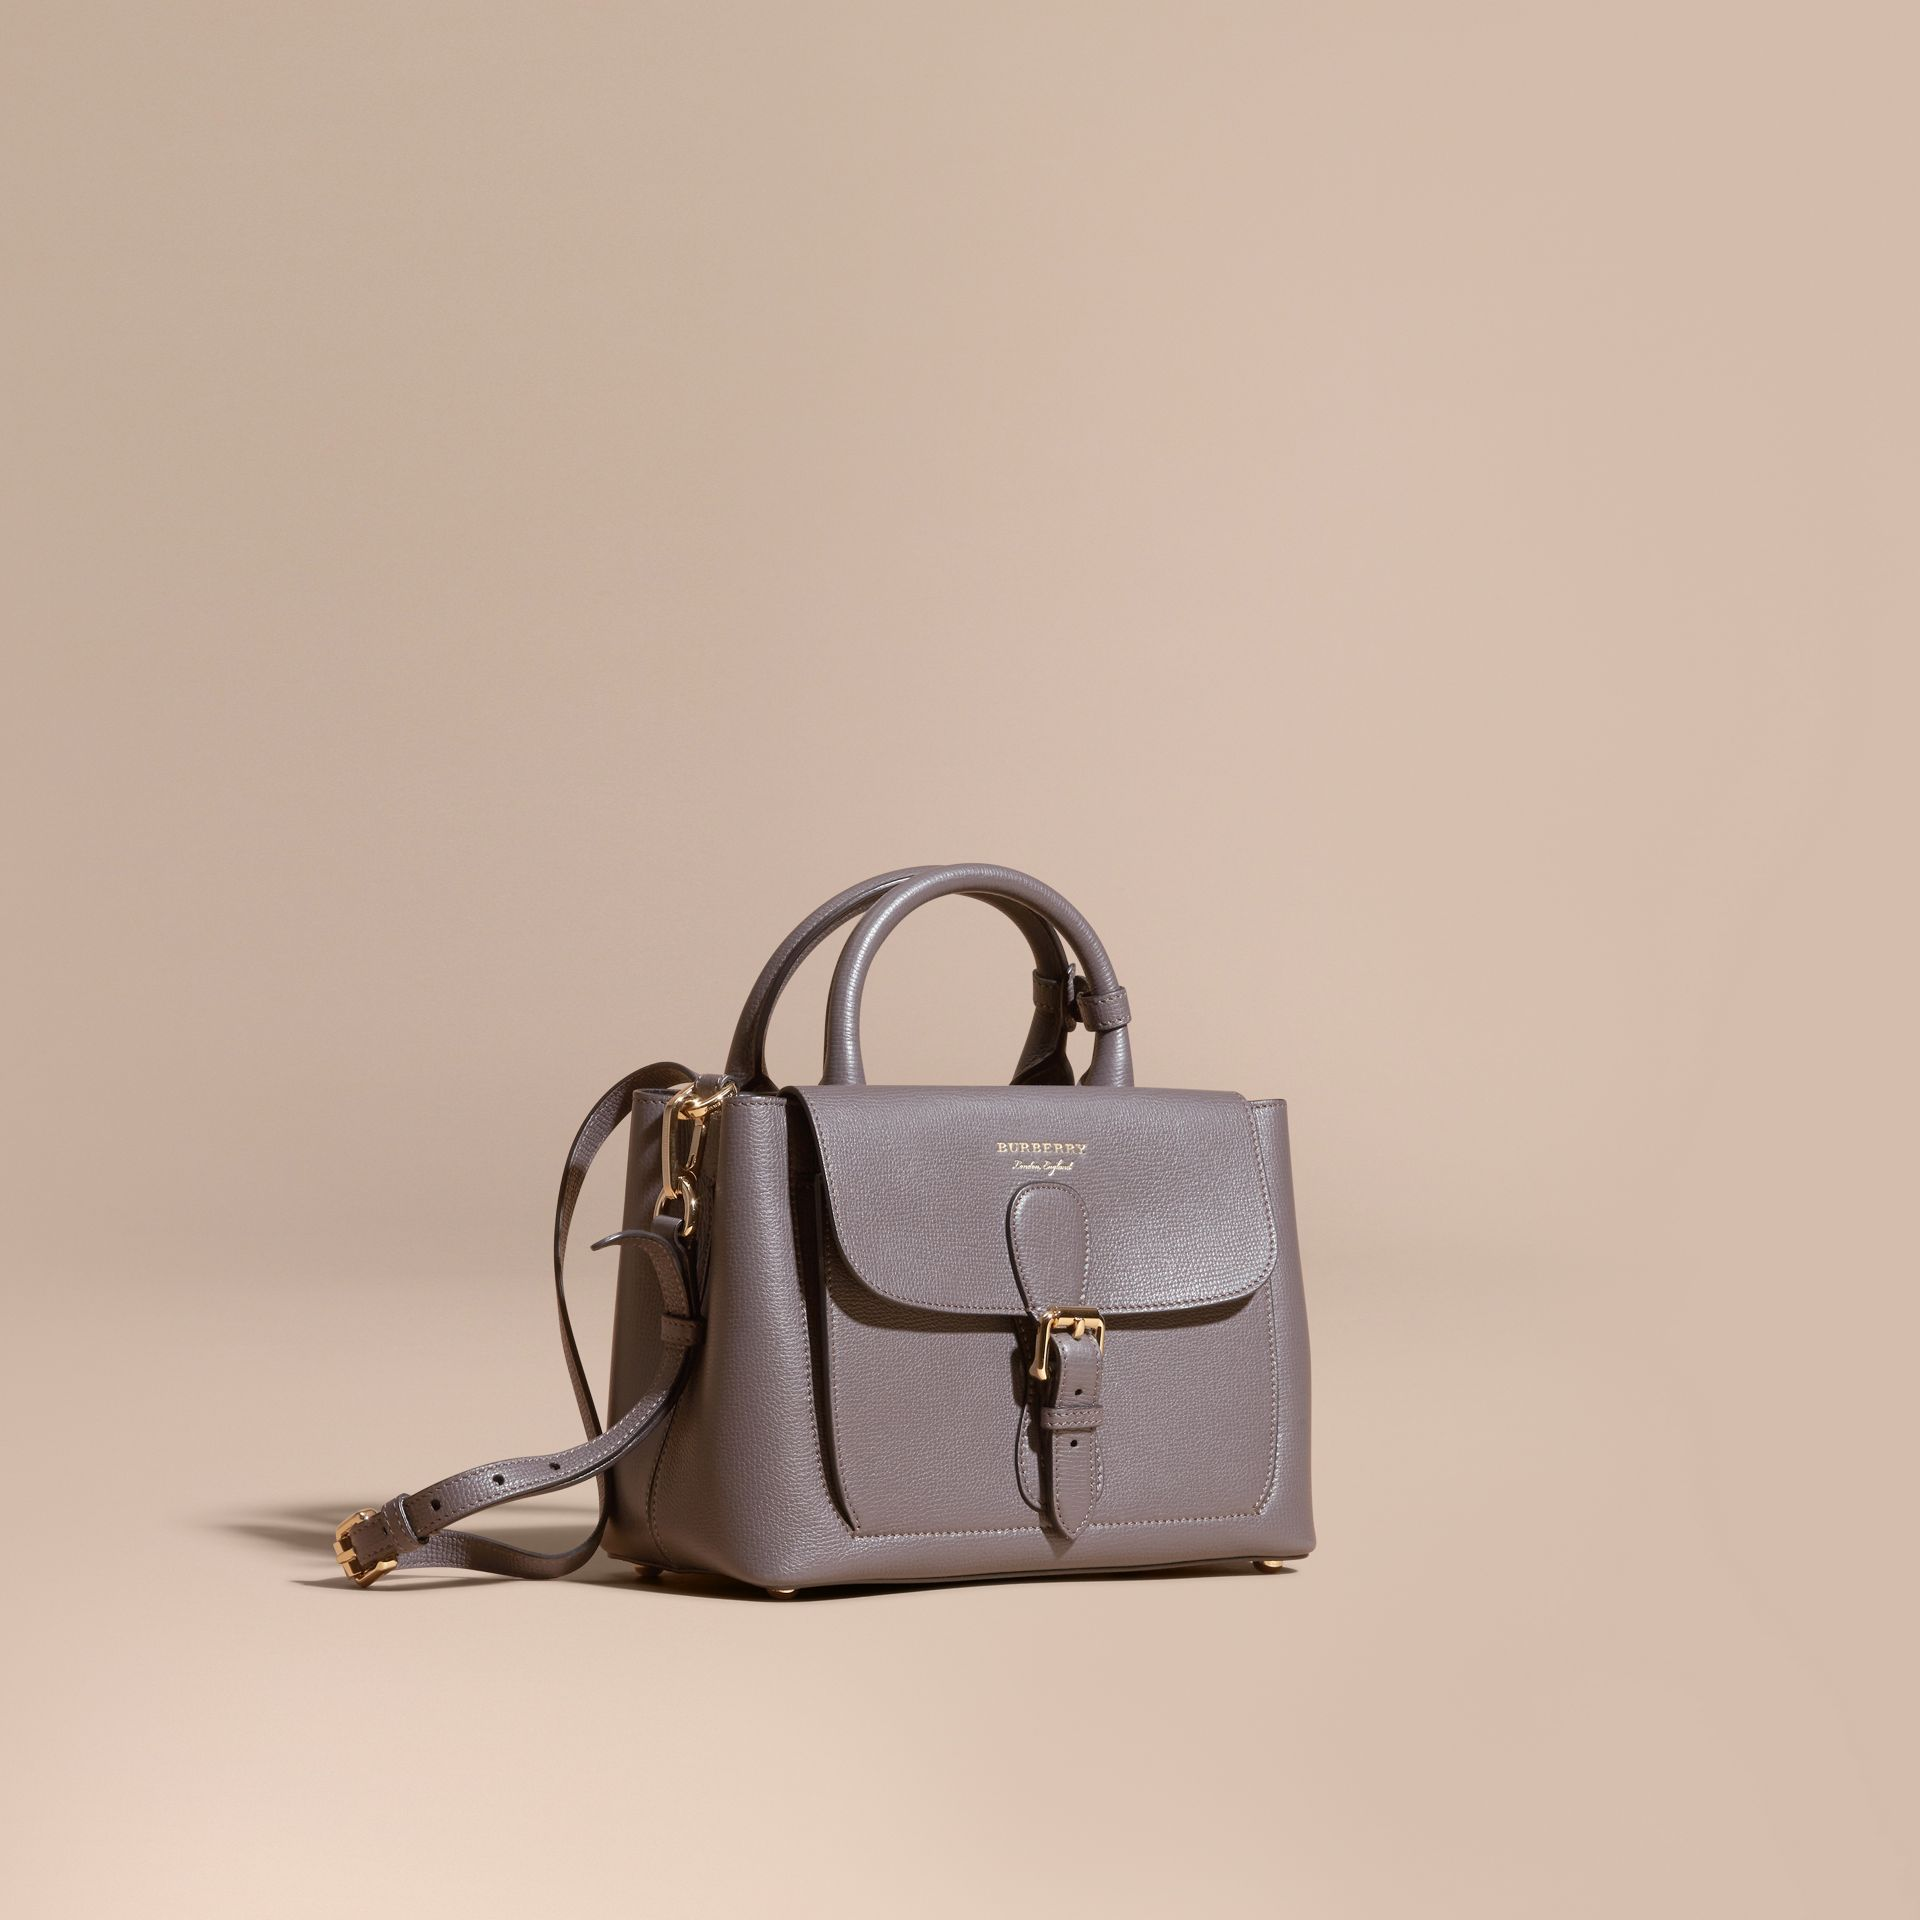 Sepia grey The Small Saddle Bag in Grainy Bonded Leather Sepia Grey - gallery image 1